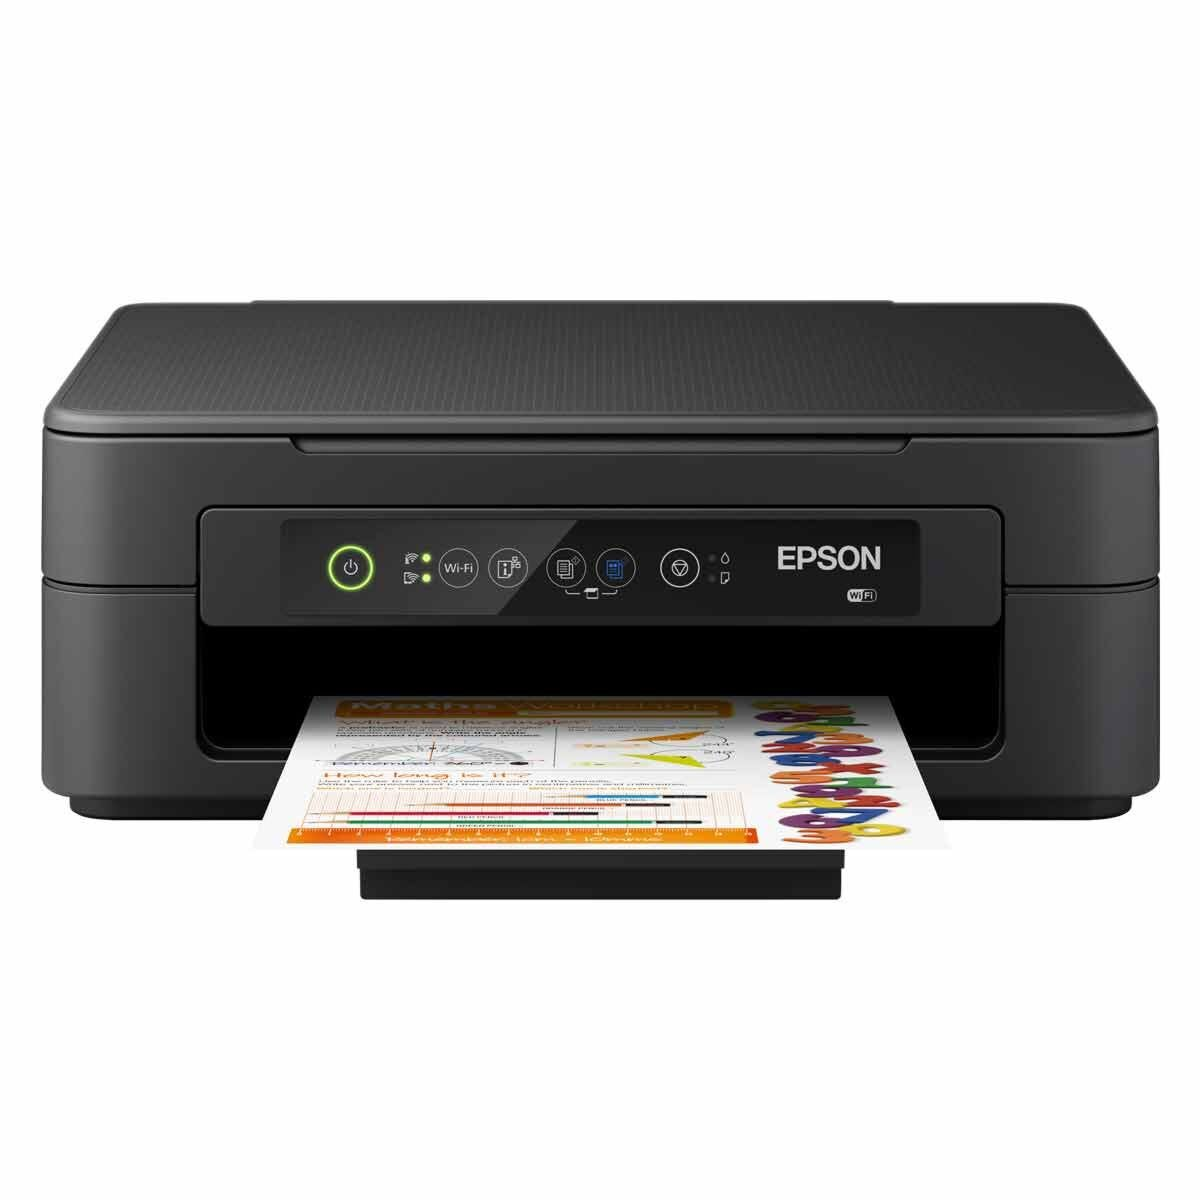 Epson Expression Home XP-2100 Printer with 12 Month ReadyPrint Ink Subscription Included